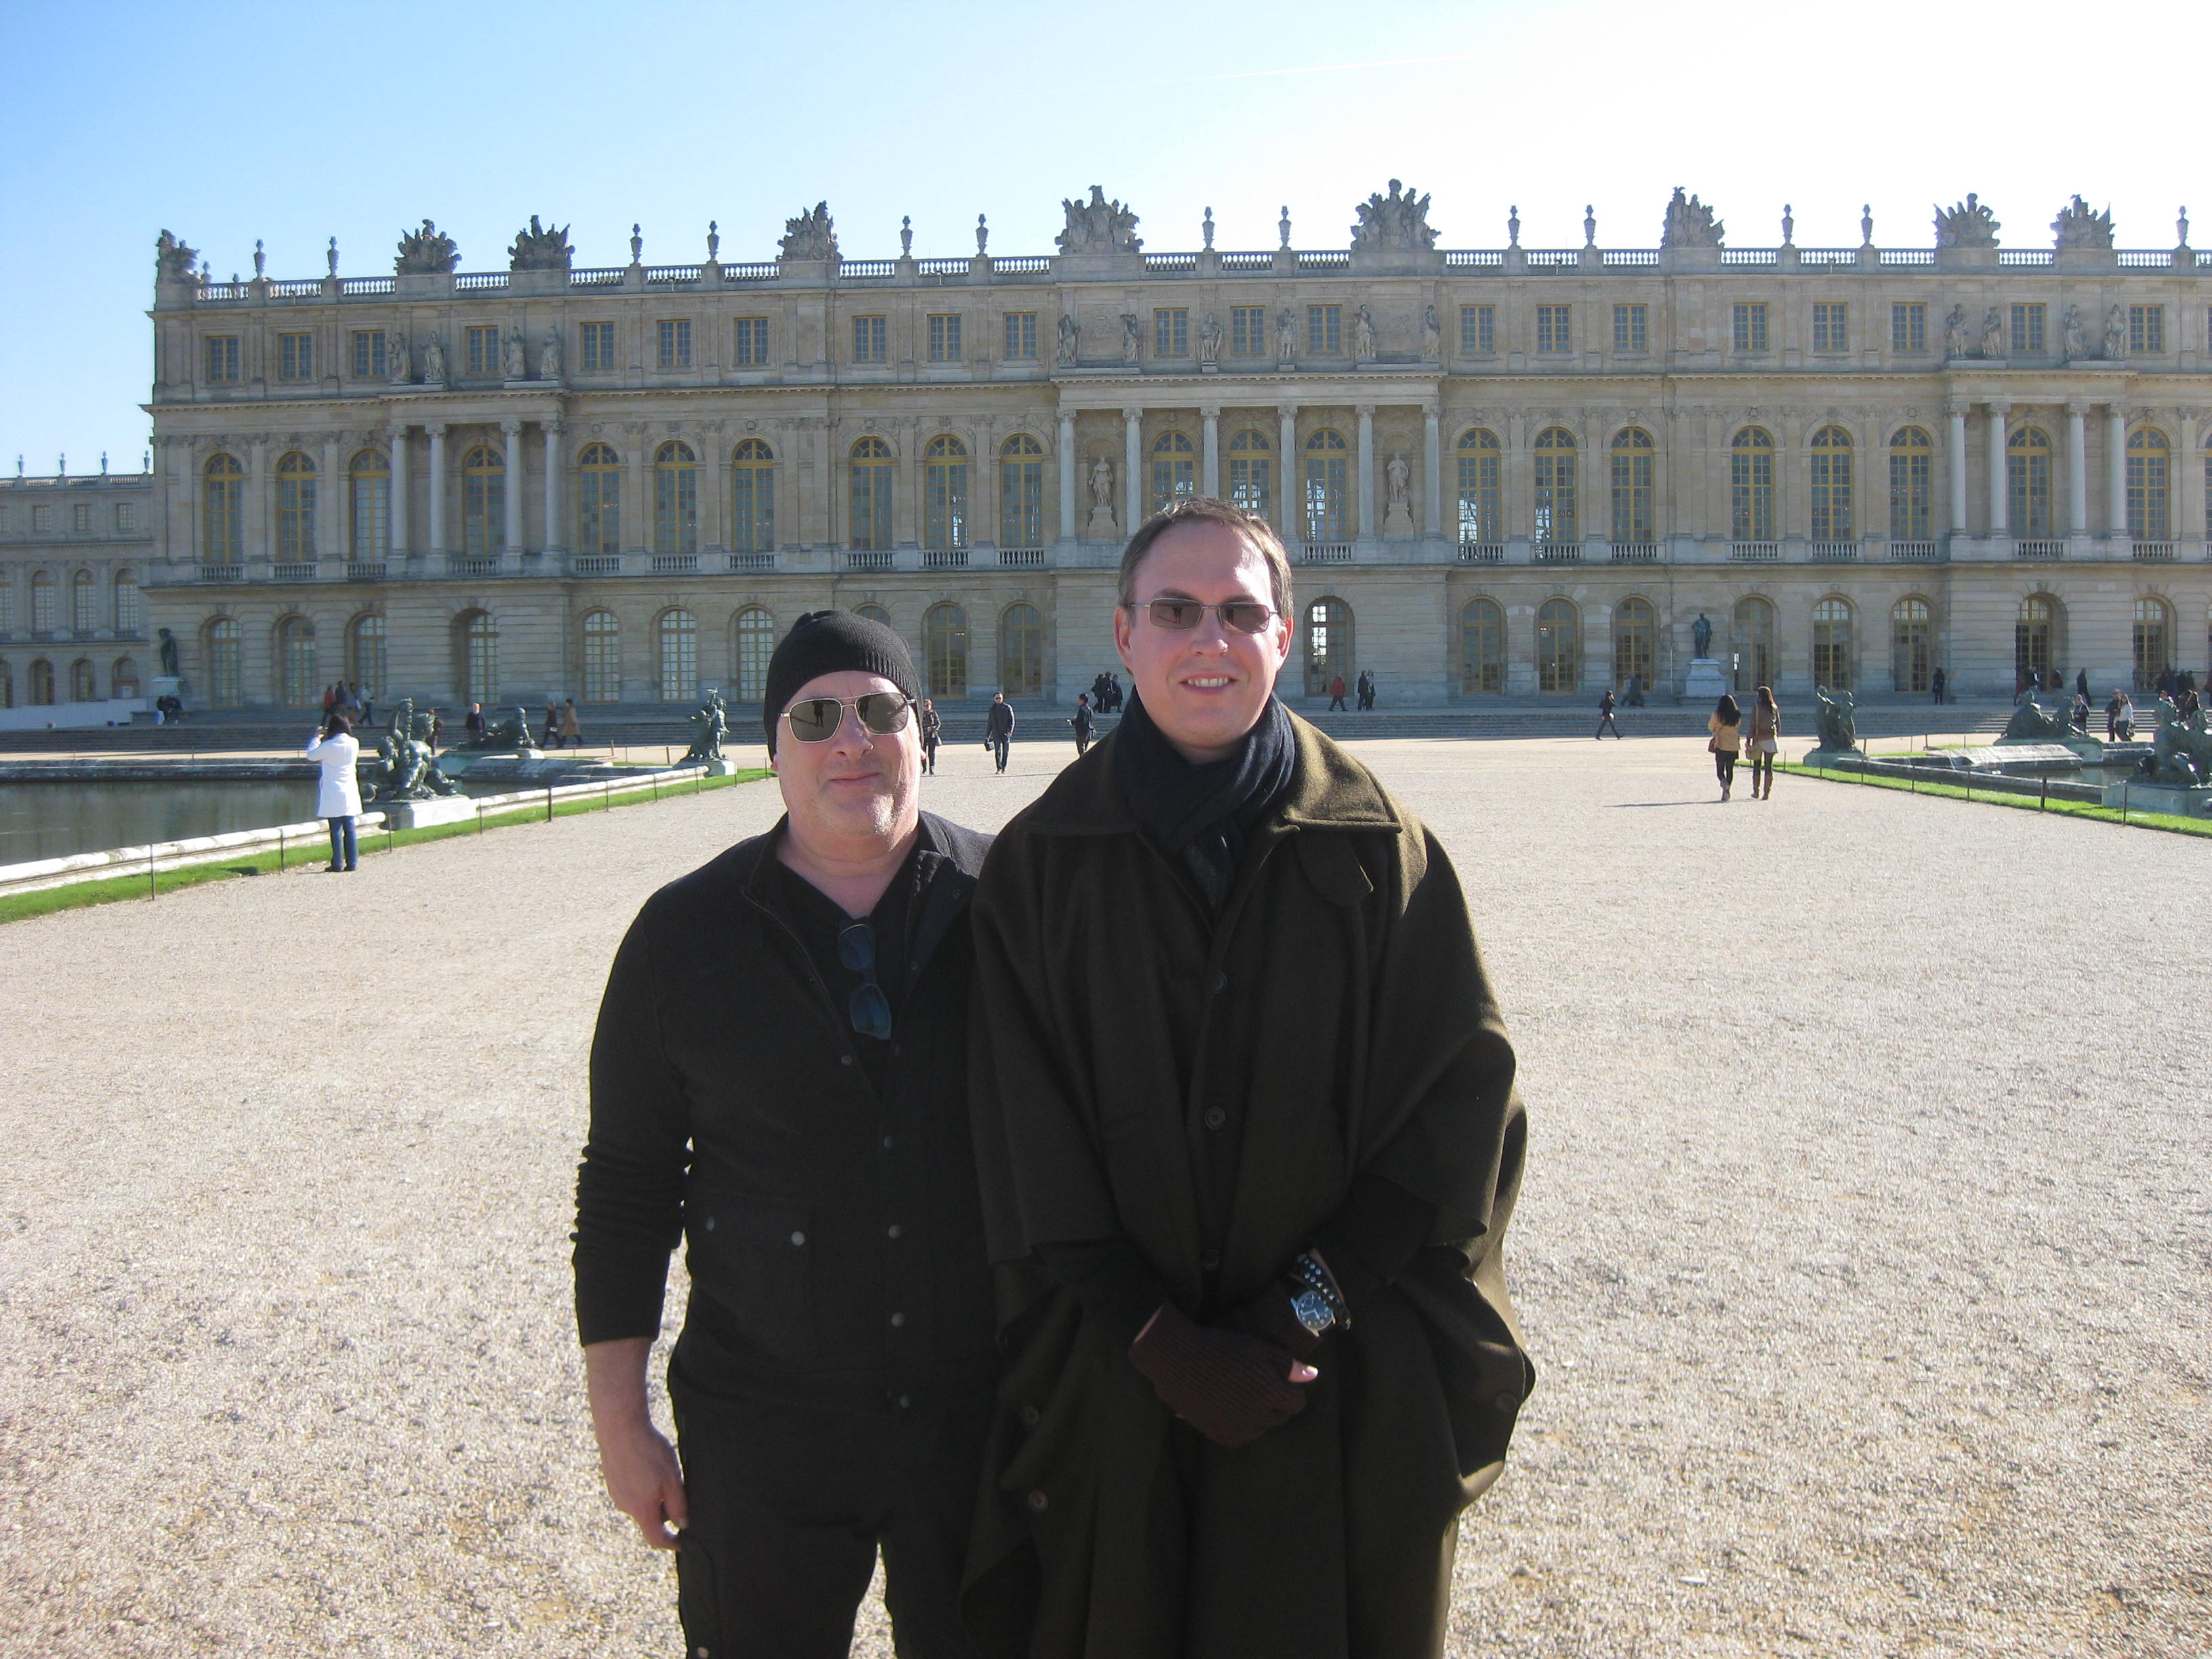 My partner Morrie Breyer and I at the Palace of Versailles, France.